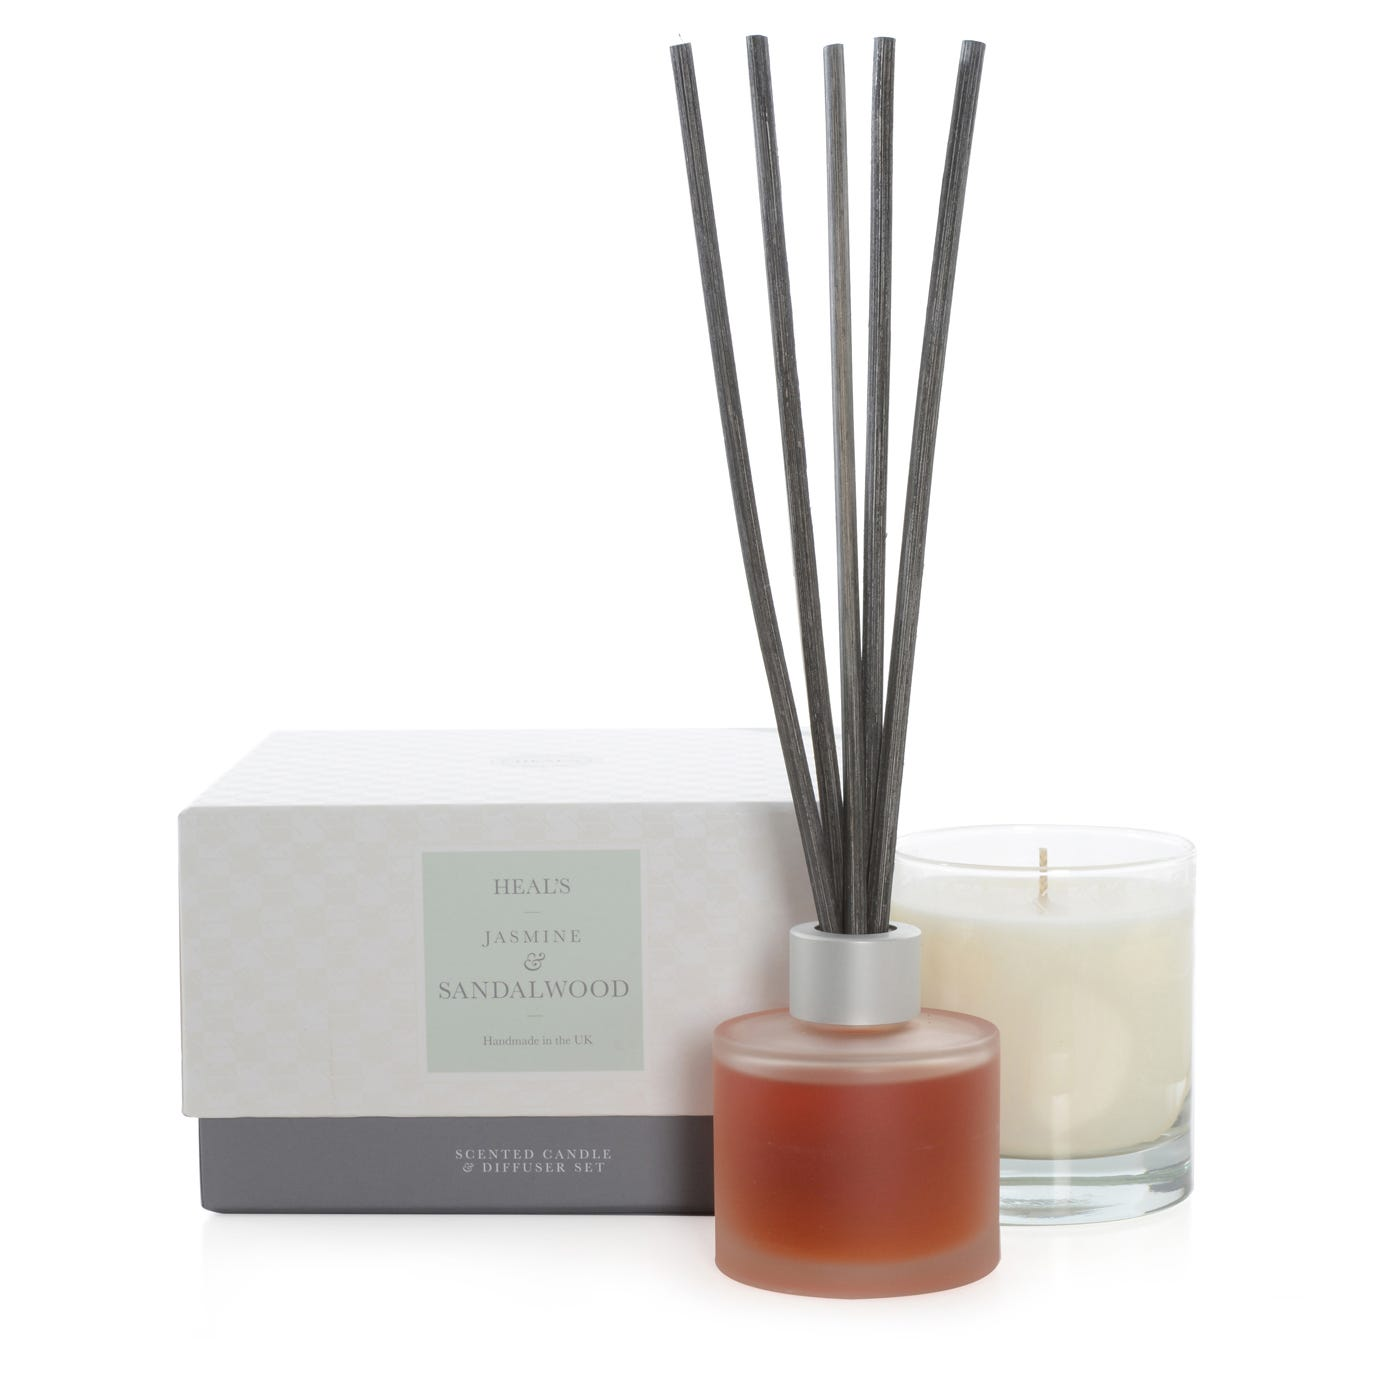 Jasmine & Sandalwood Candle And Diffuser Gift